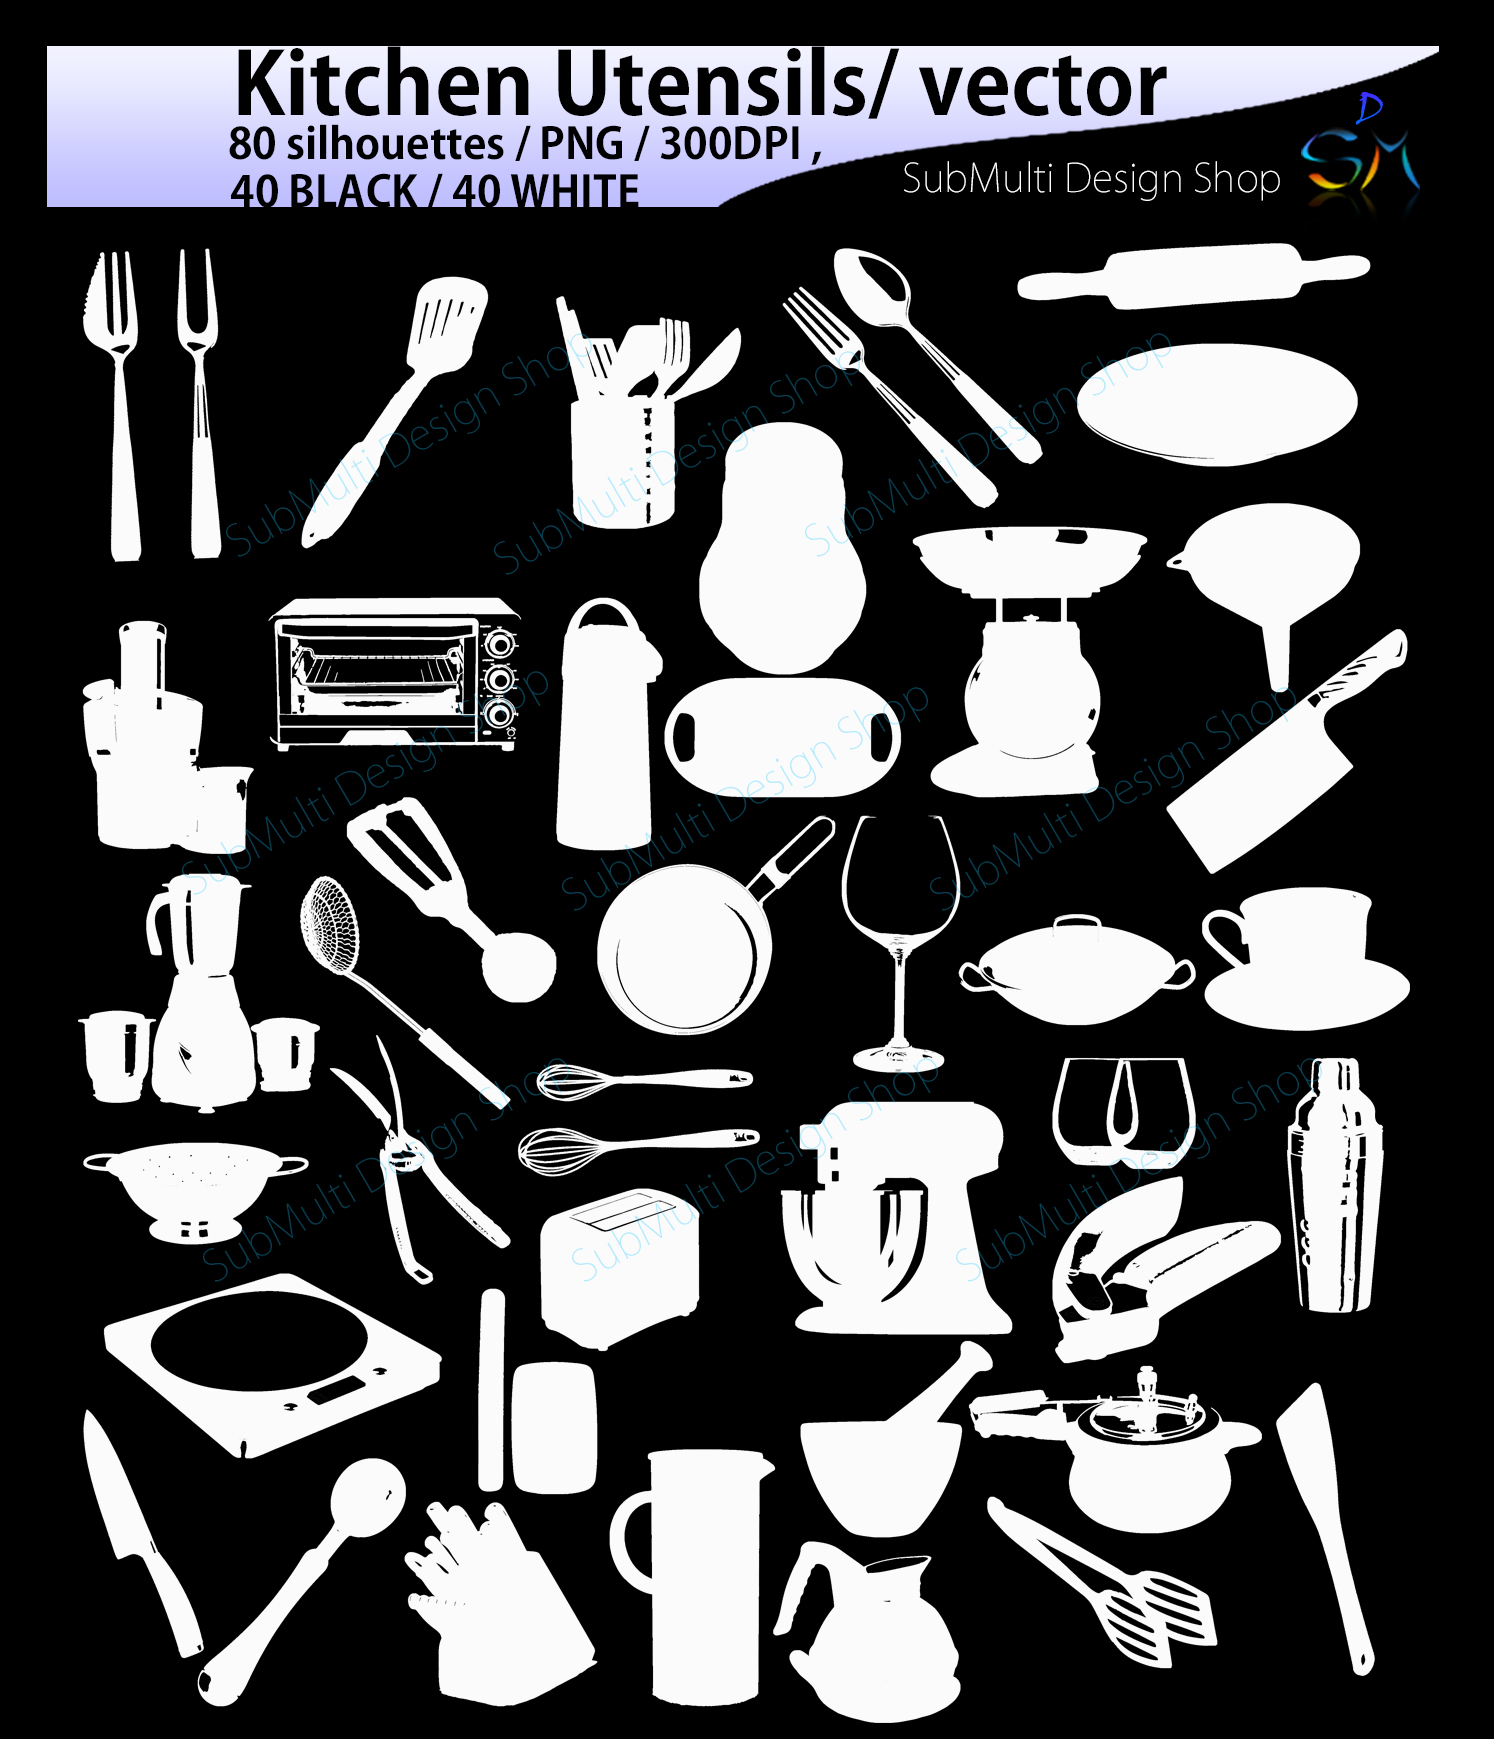 Kitchen Utensils silhouette svg / Kitchen Utensils clipart / Kitchen Utensil for scrapbook and card making /vector / EPS / PNG / craft files example image 3